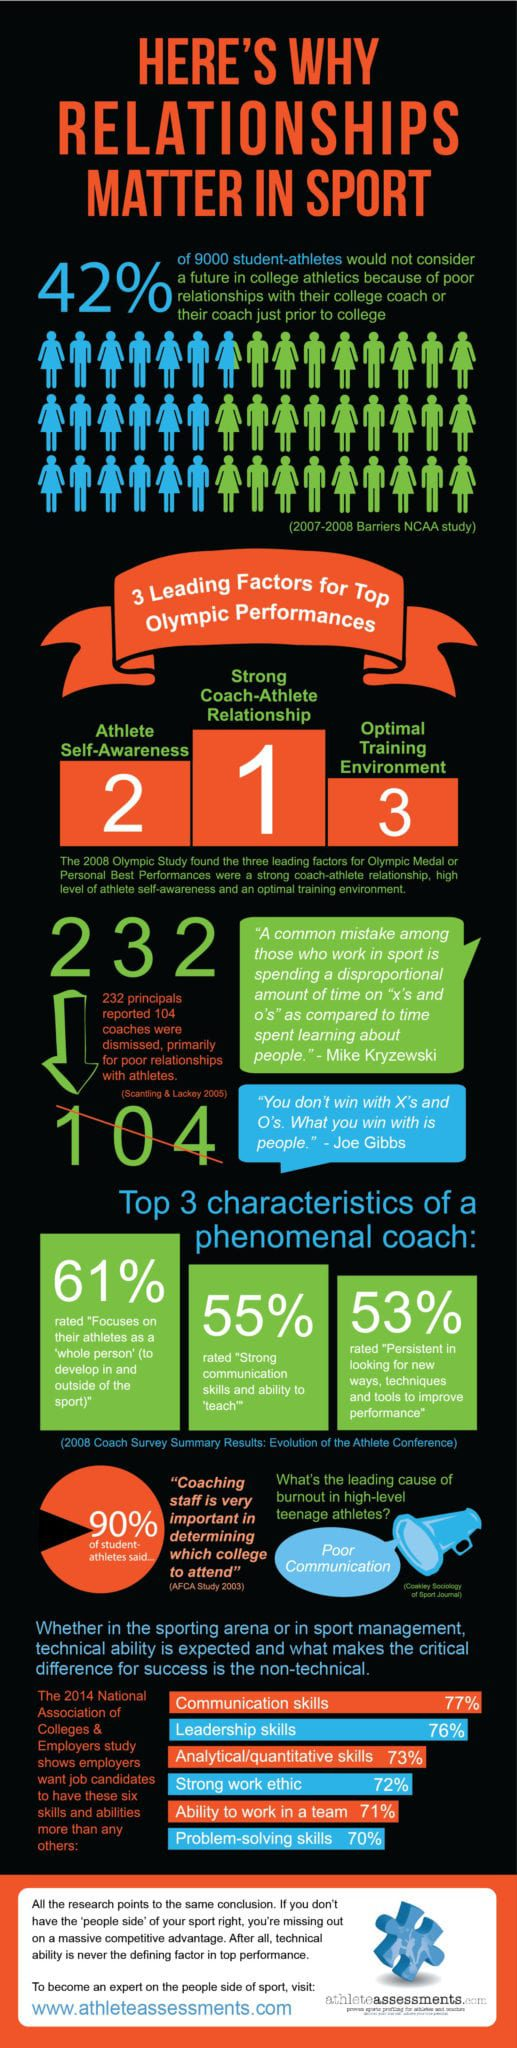 Relationships Matter in Sport Infographic